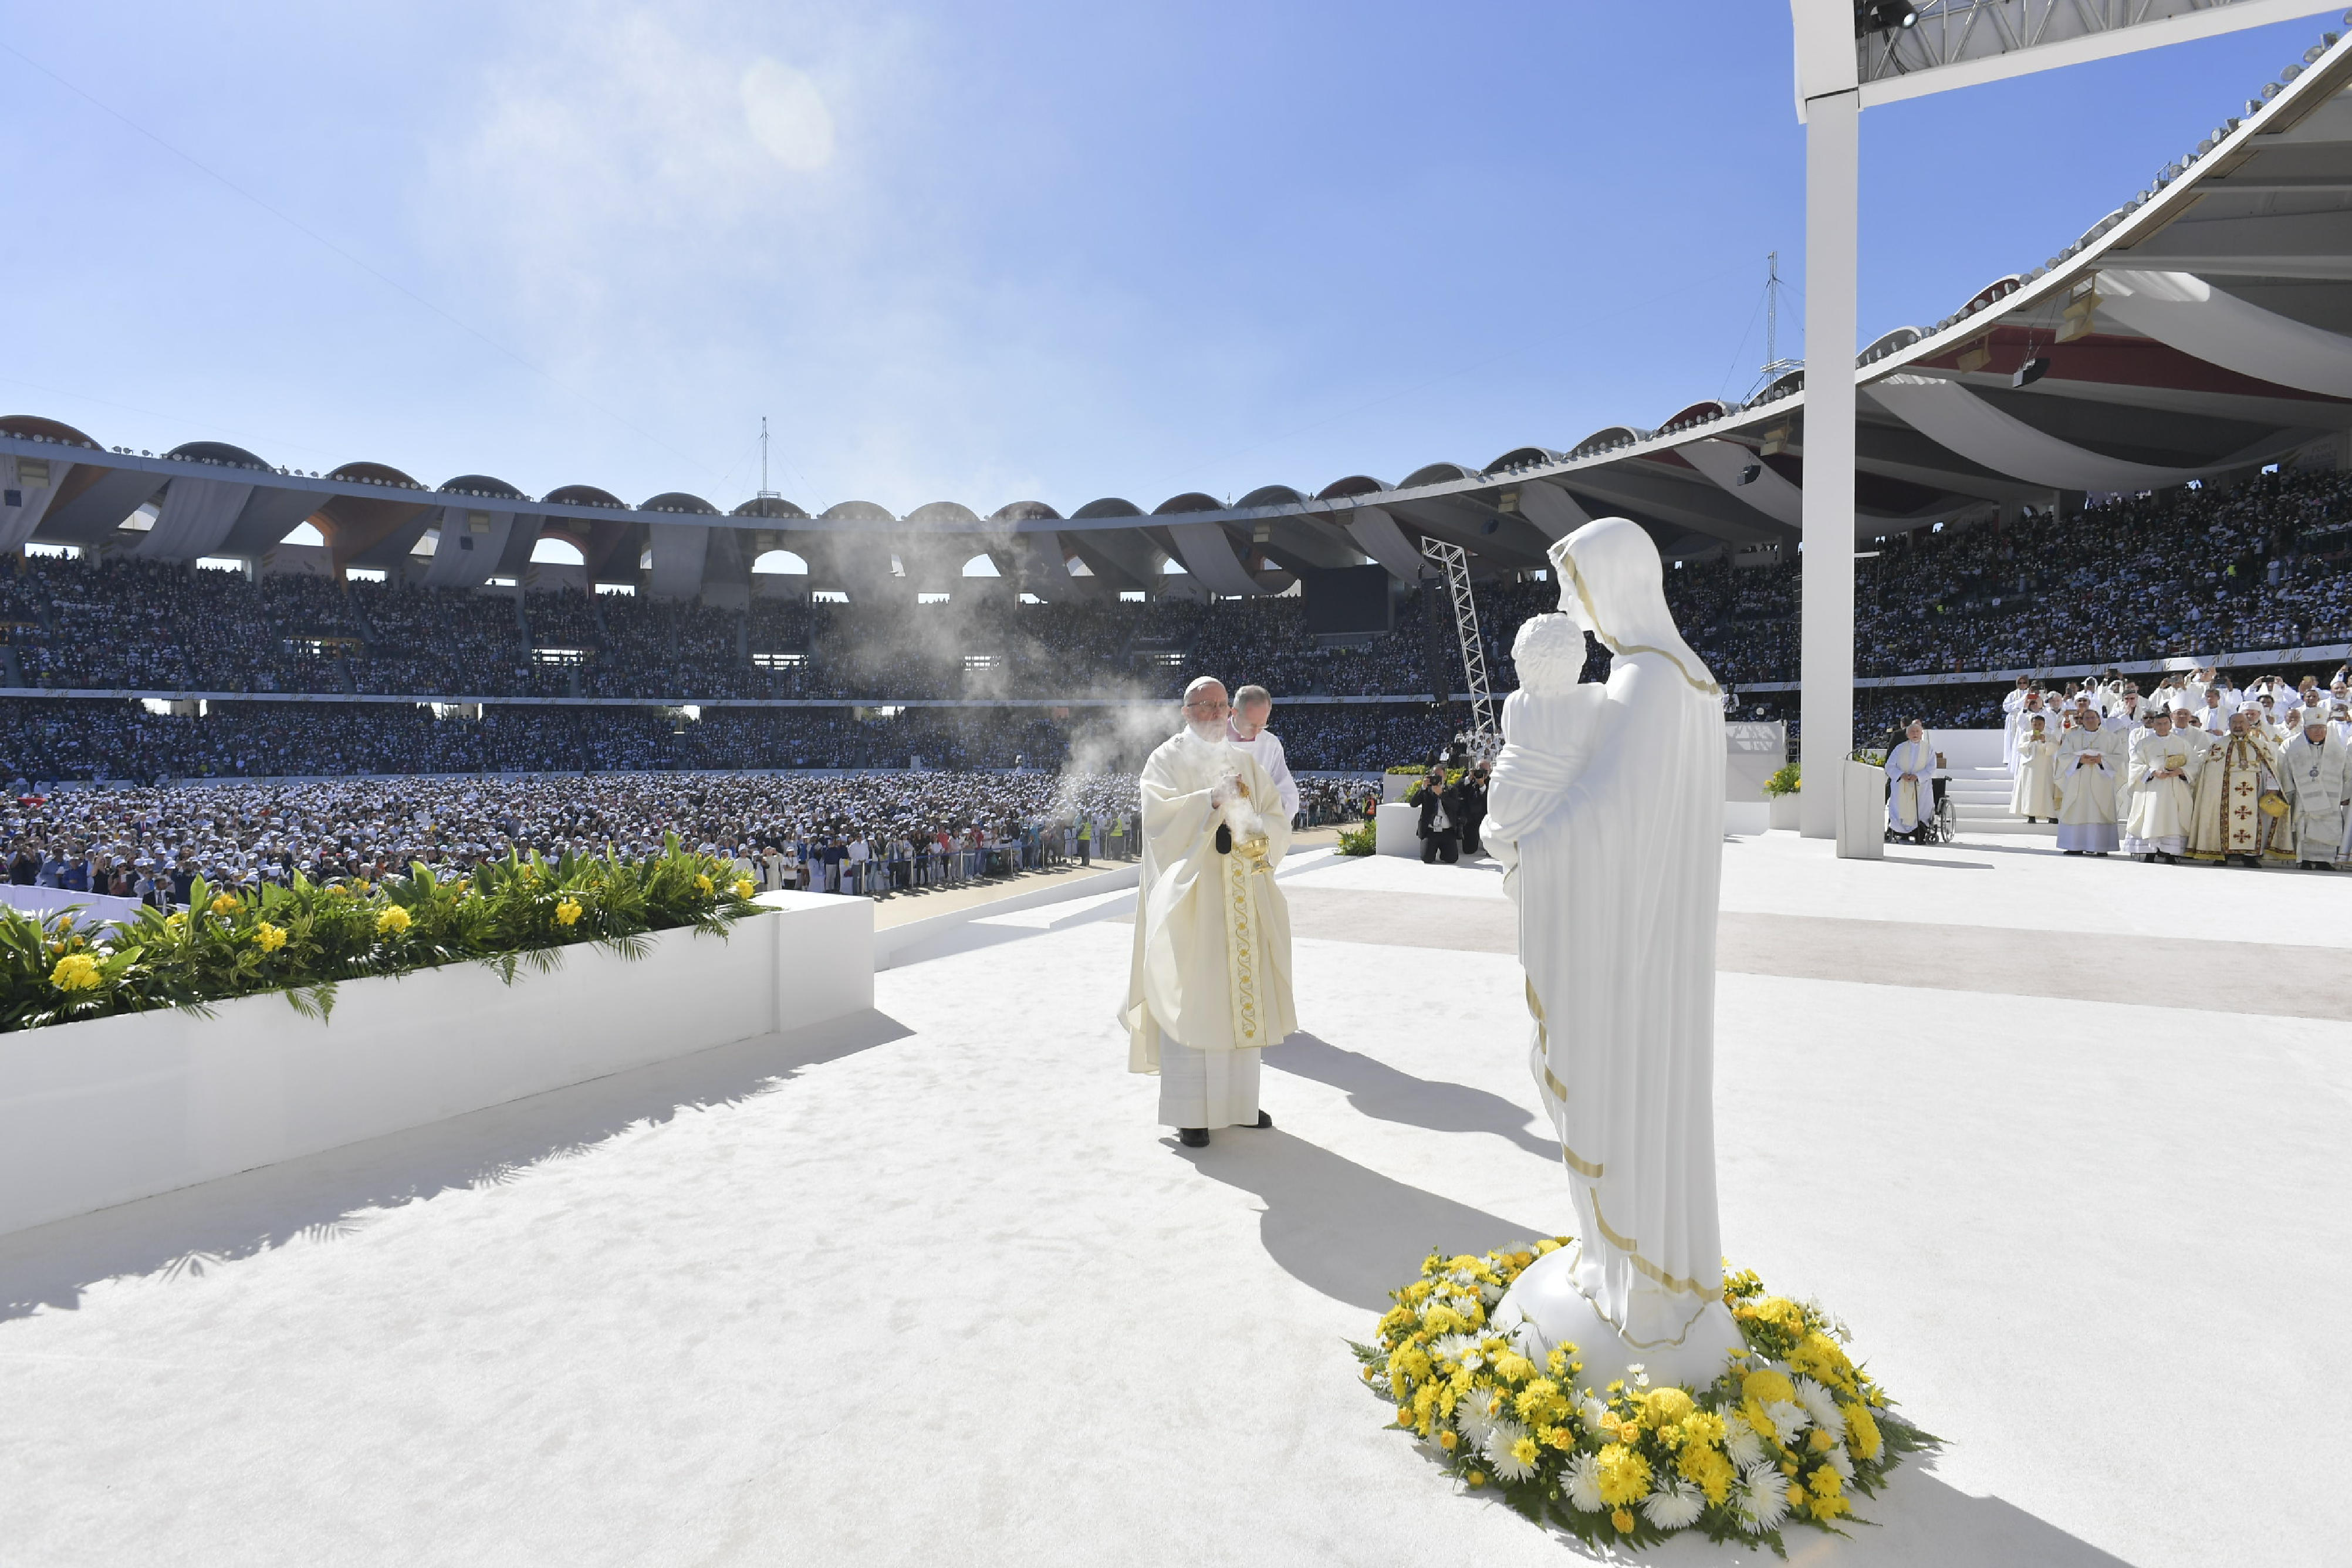 Messe au Zayed Sports City, Abou Dhabi, Emirats arabes unis © Vatican Media